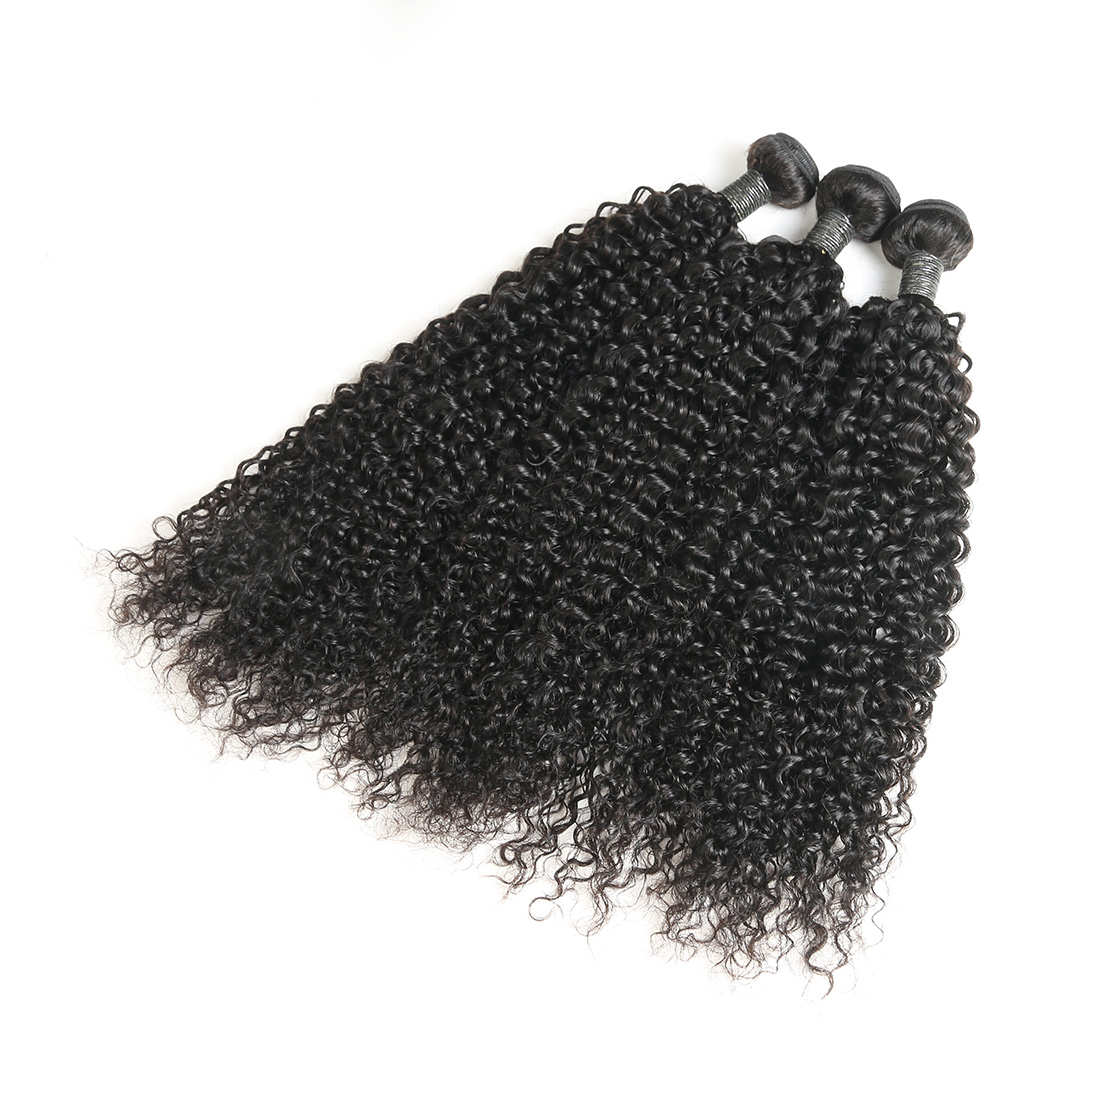 9A Indian Jerry Curly Human Virgin Hair Weave 4 Bundles With Lace Closure